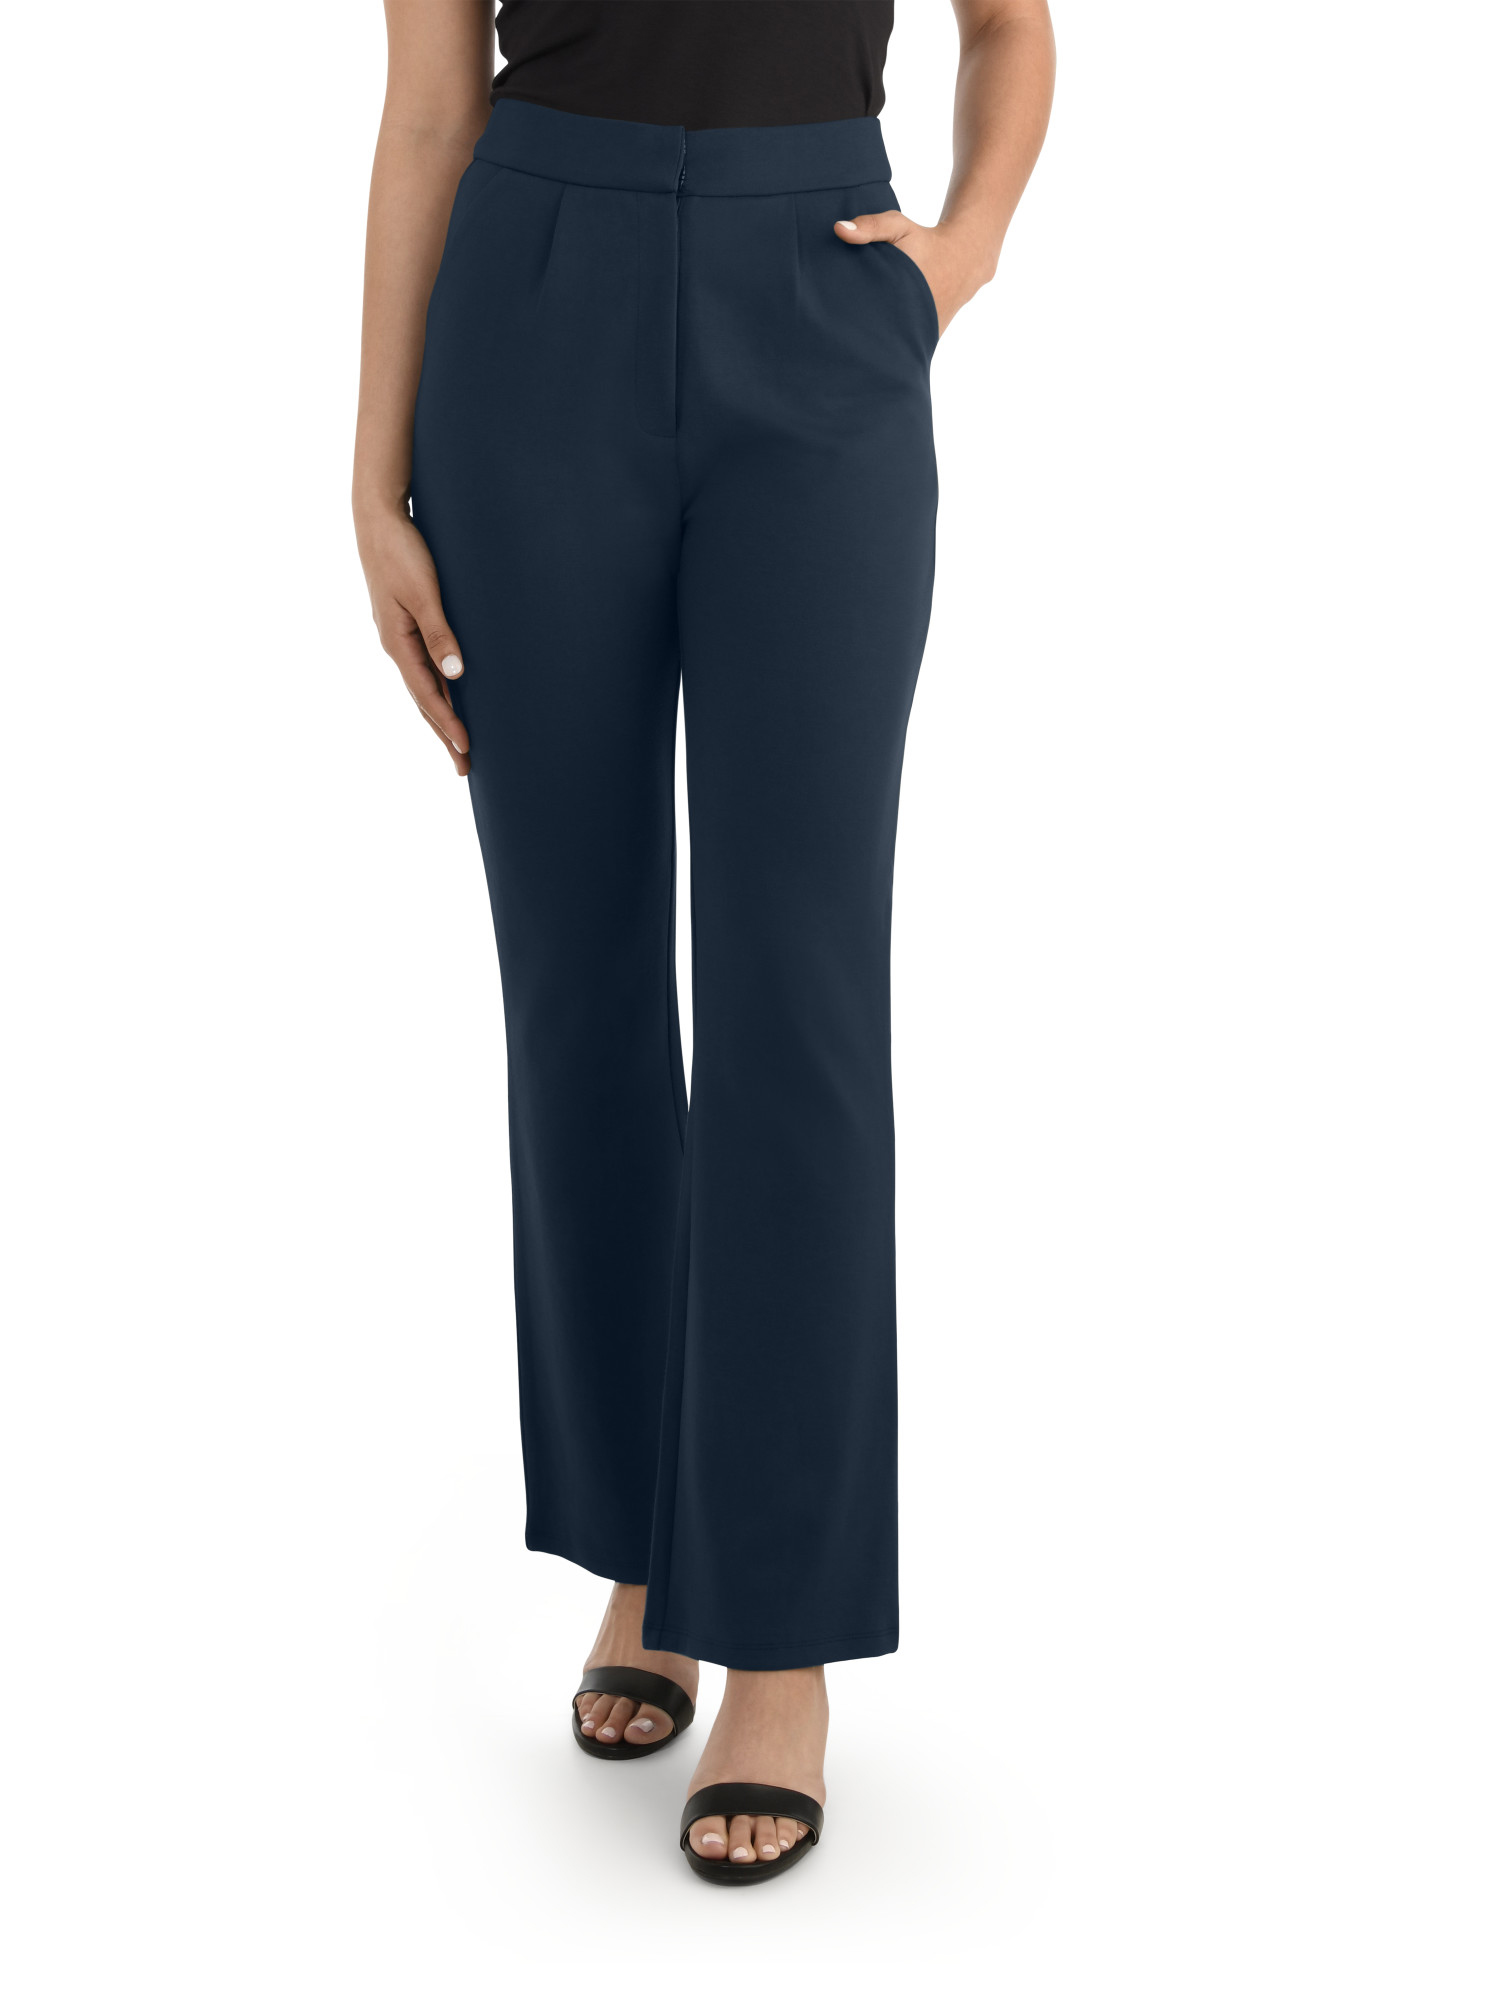 Women's Fit & Flare Pant, Available in Sizes up to 2XL